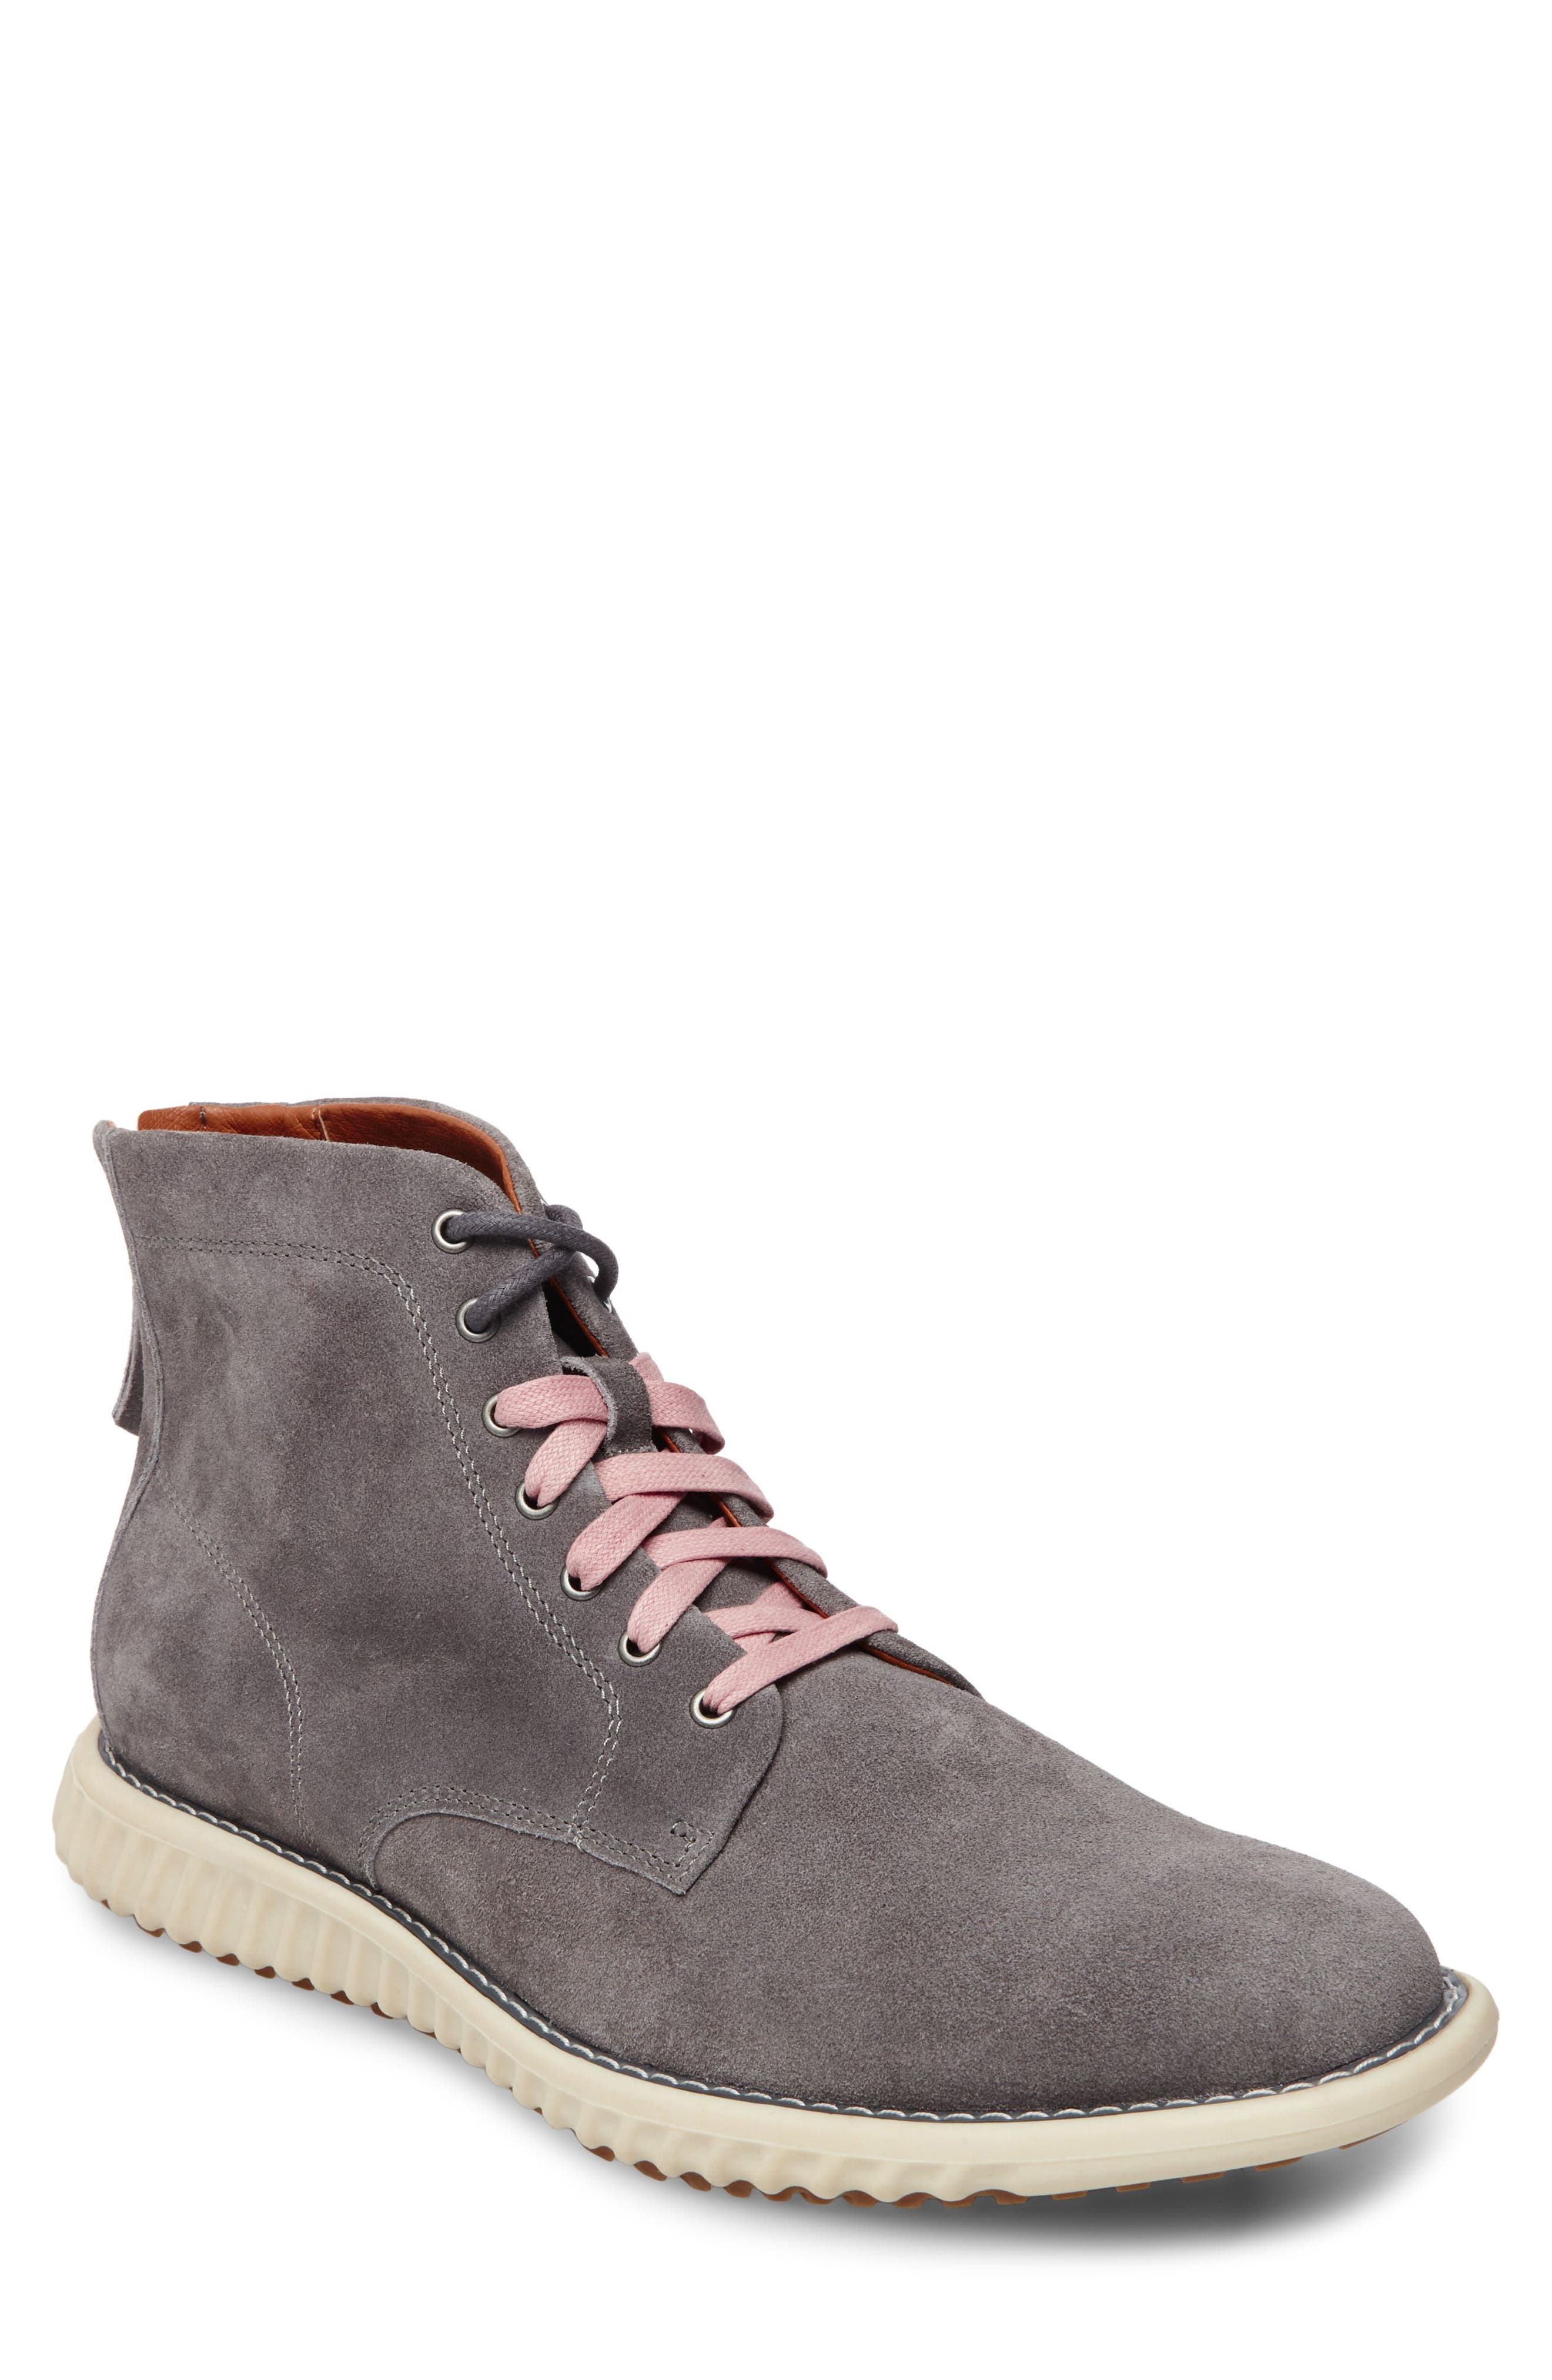 Verner Suede Plain Toe Boot,                             Main thumbnail 1, color,                             Dark Grey Suede